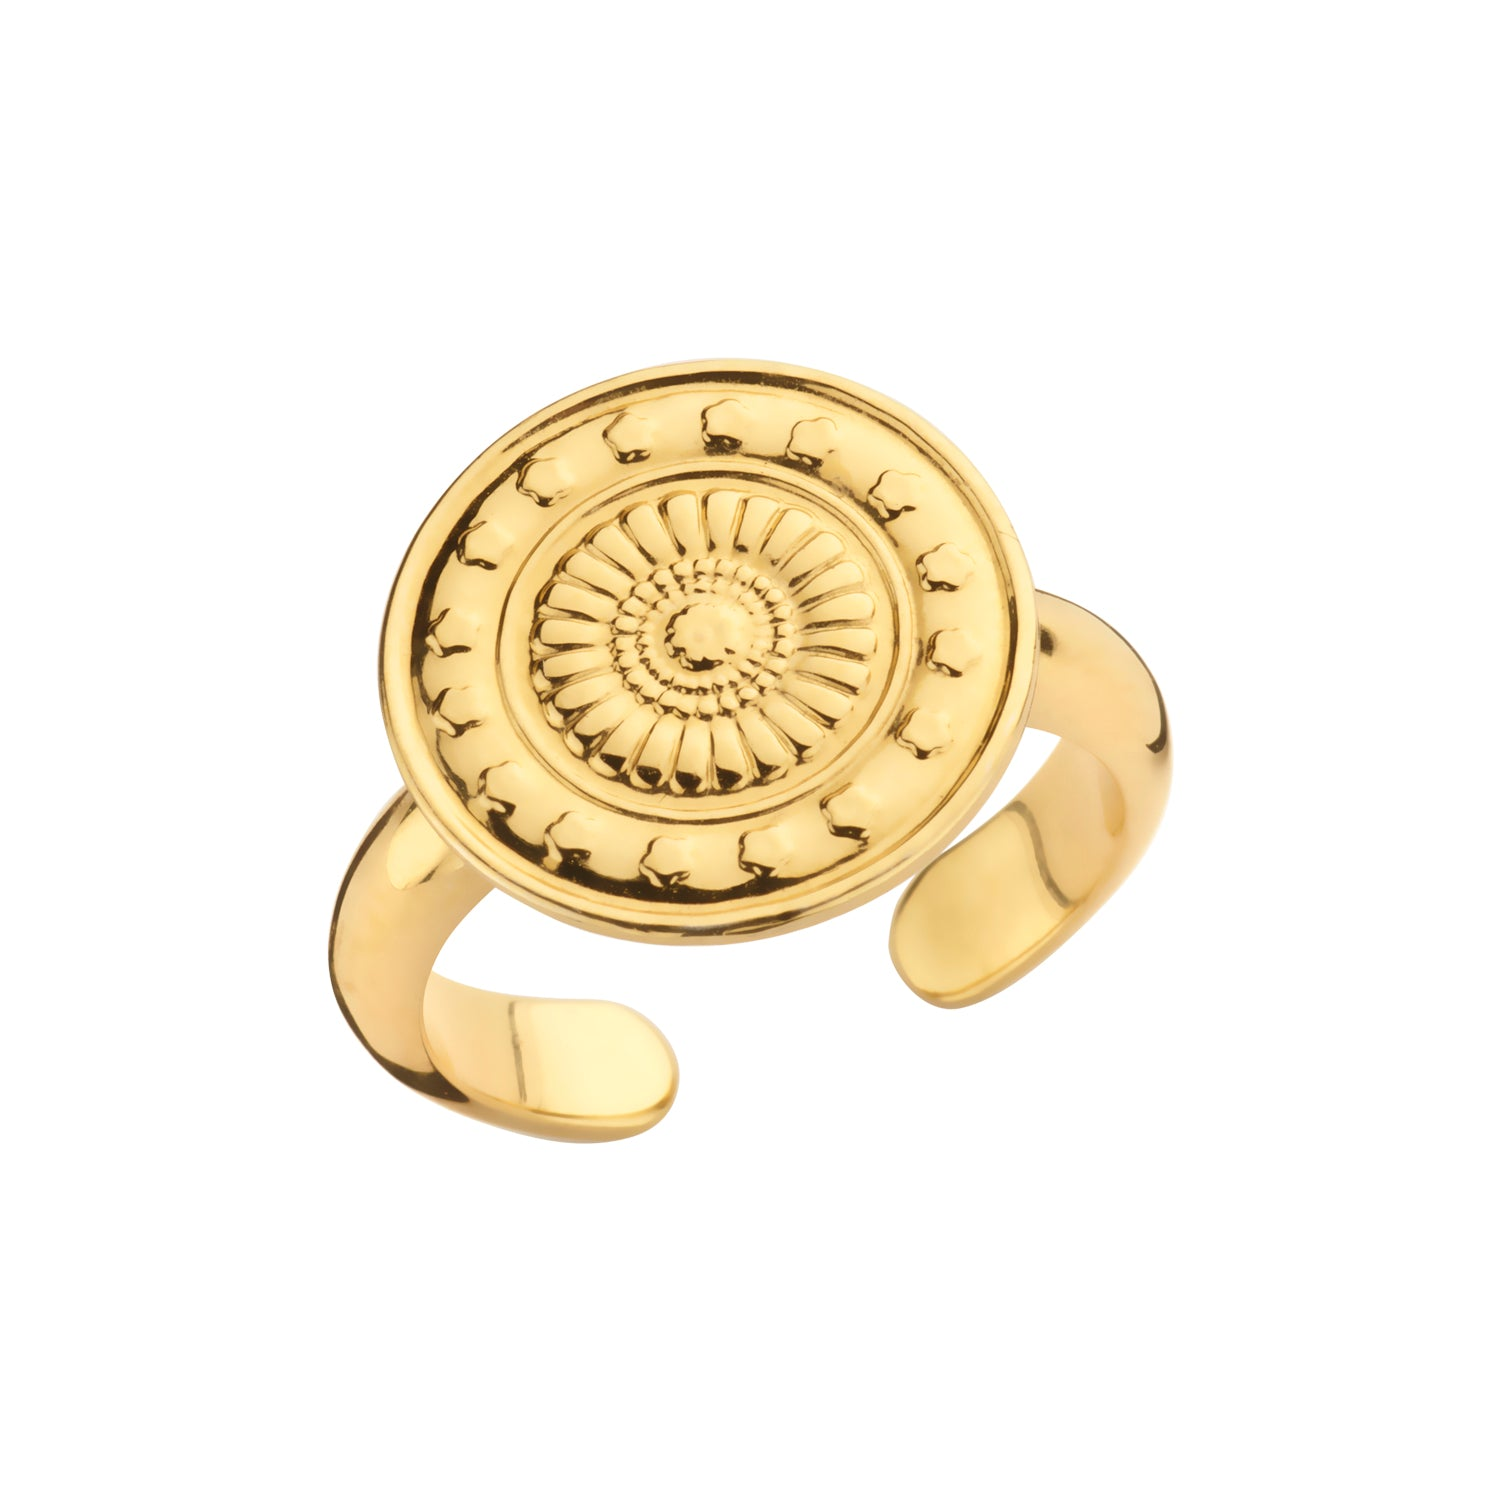 Ring Peru coin gold